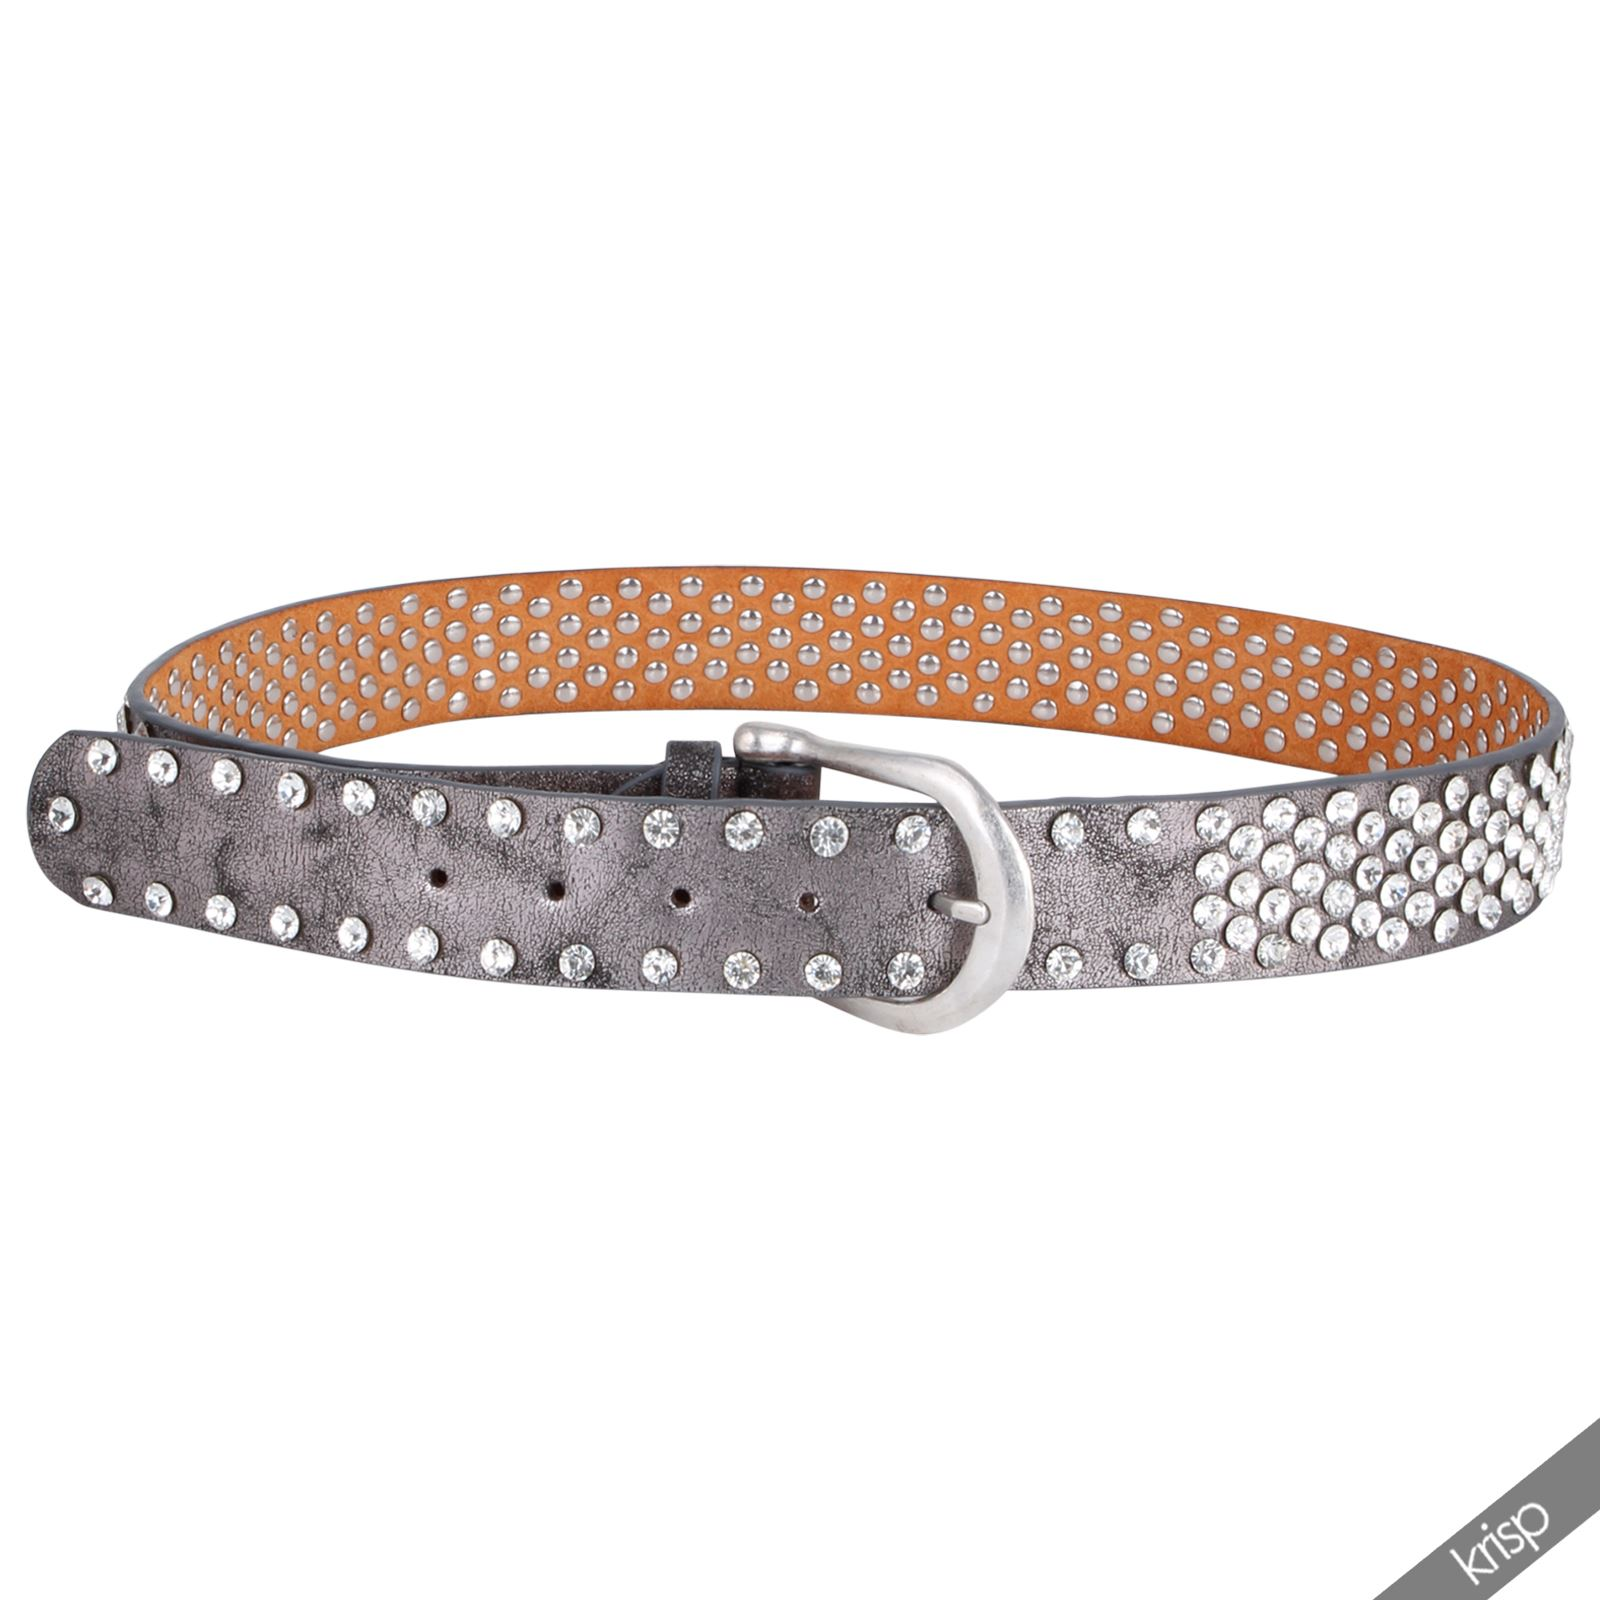 Shop eBay for great deals on Elastic Belts for Women with Rhinestone/Diamante. You'll find new or used products in Elastic Belts for Women with Rhinestone/Diamante on eBay. .